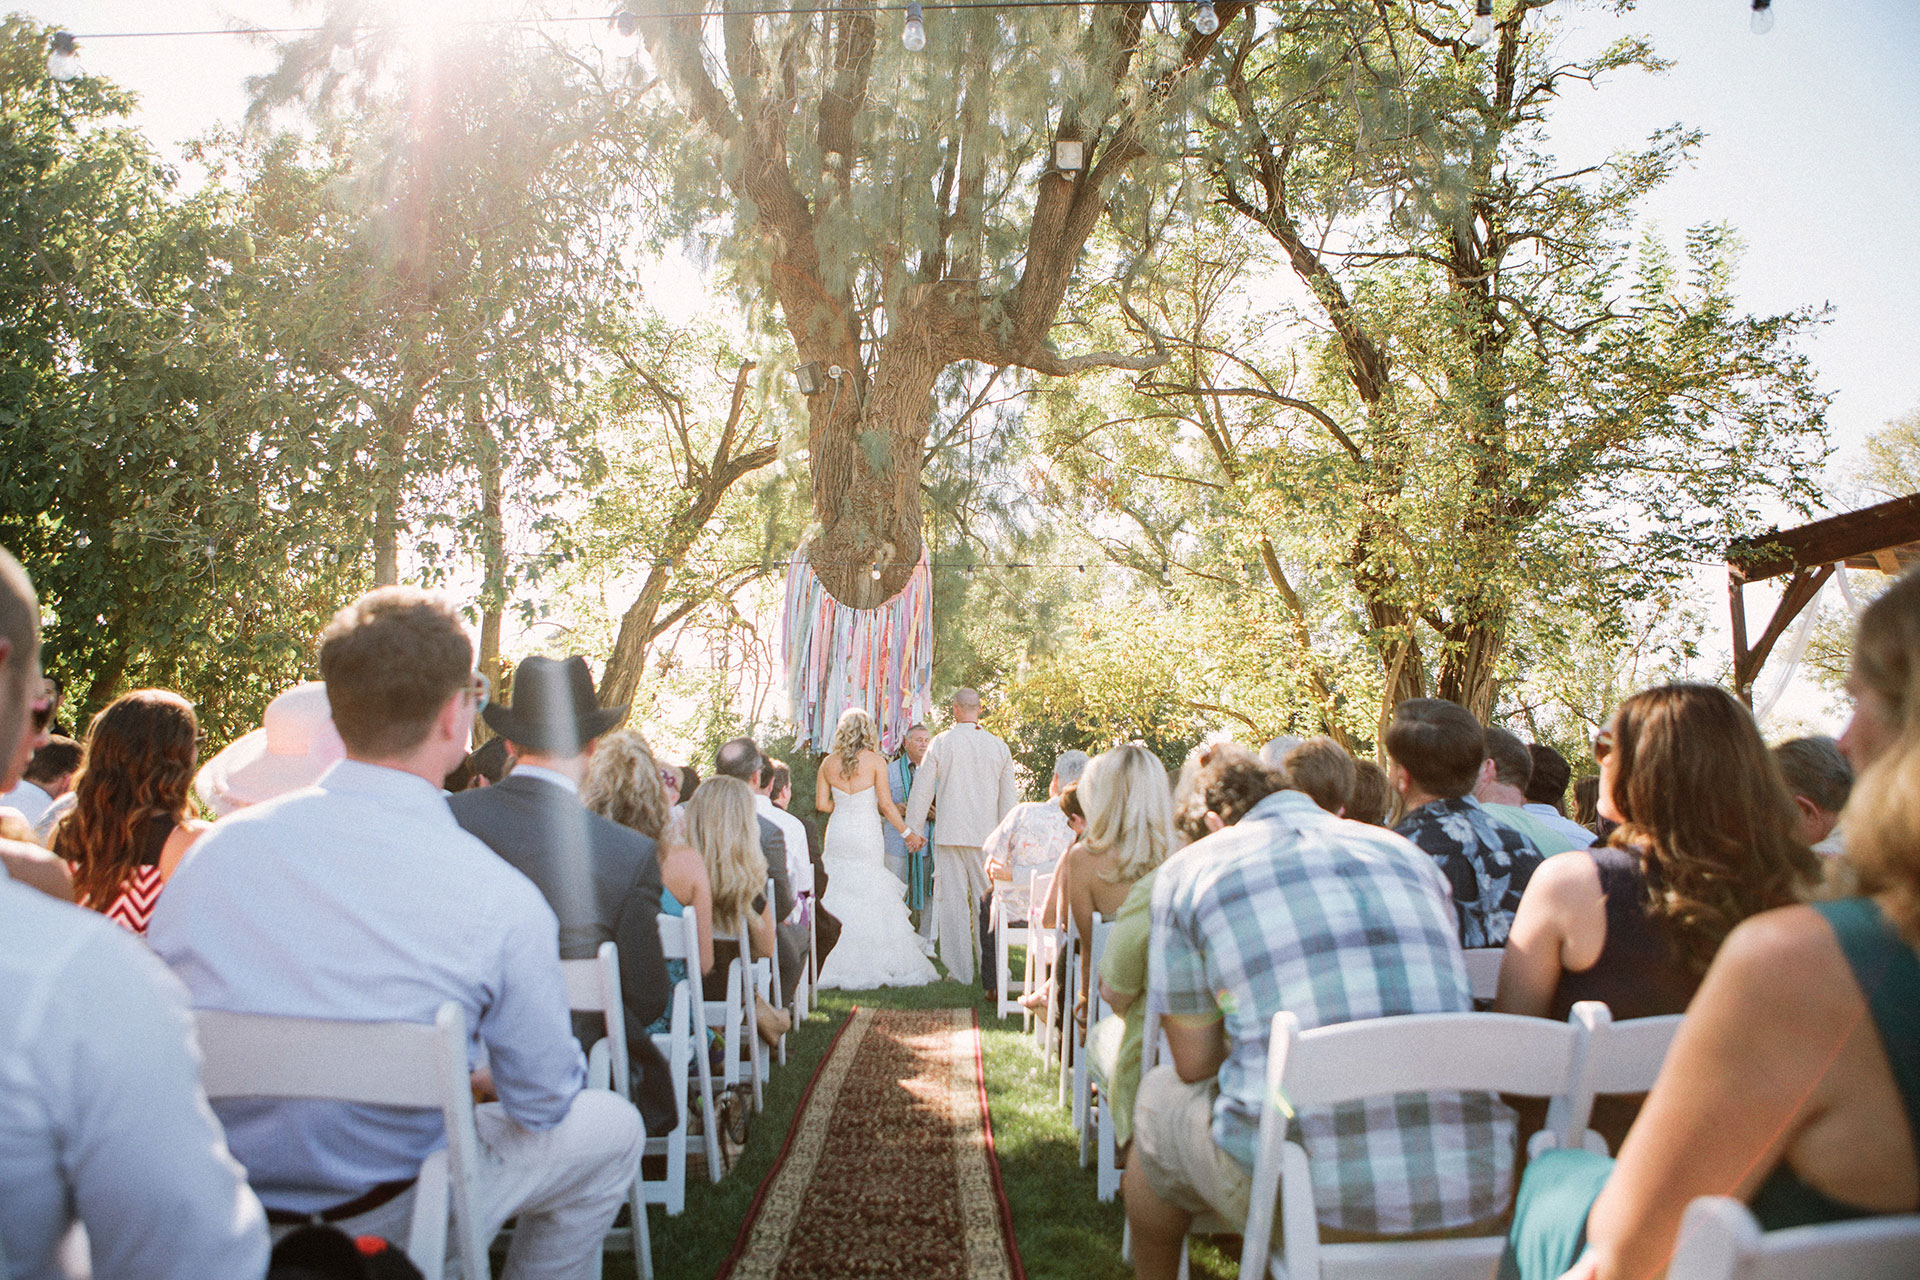 A gypsy traveller bohemian Free people wedding at a bar in Woodland California by Heather Elizabeth Photography